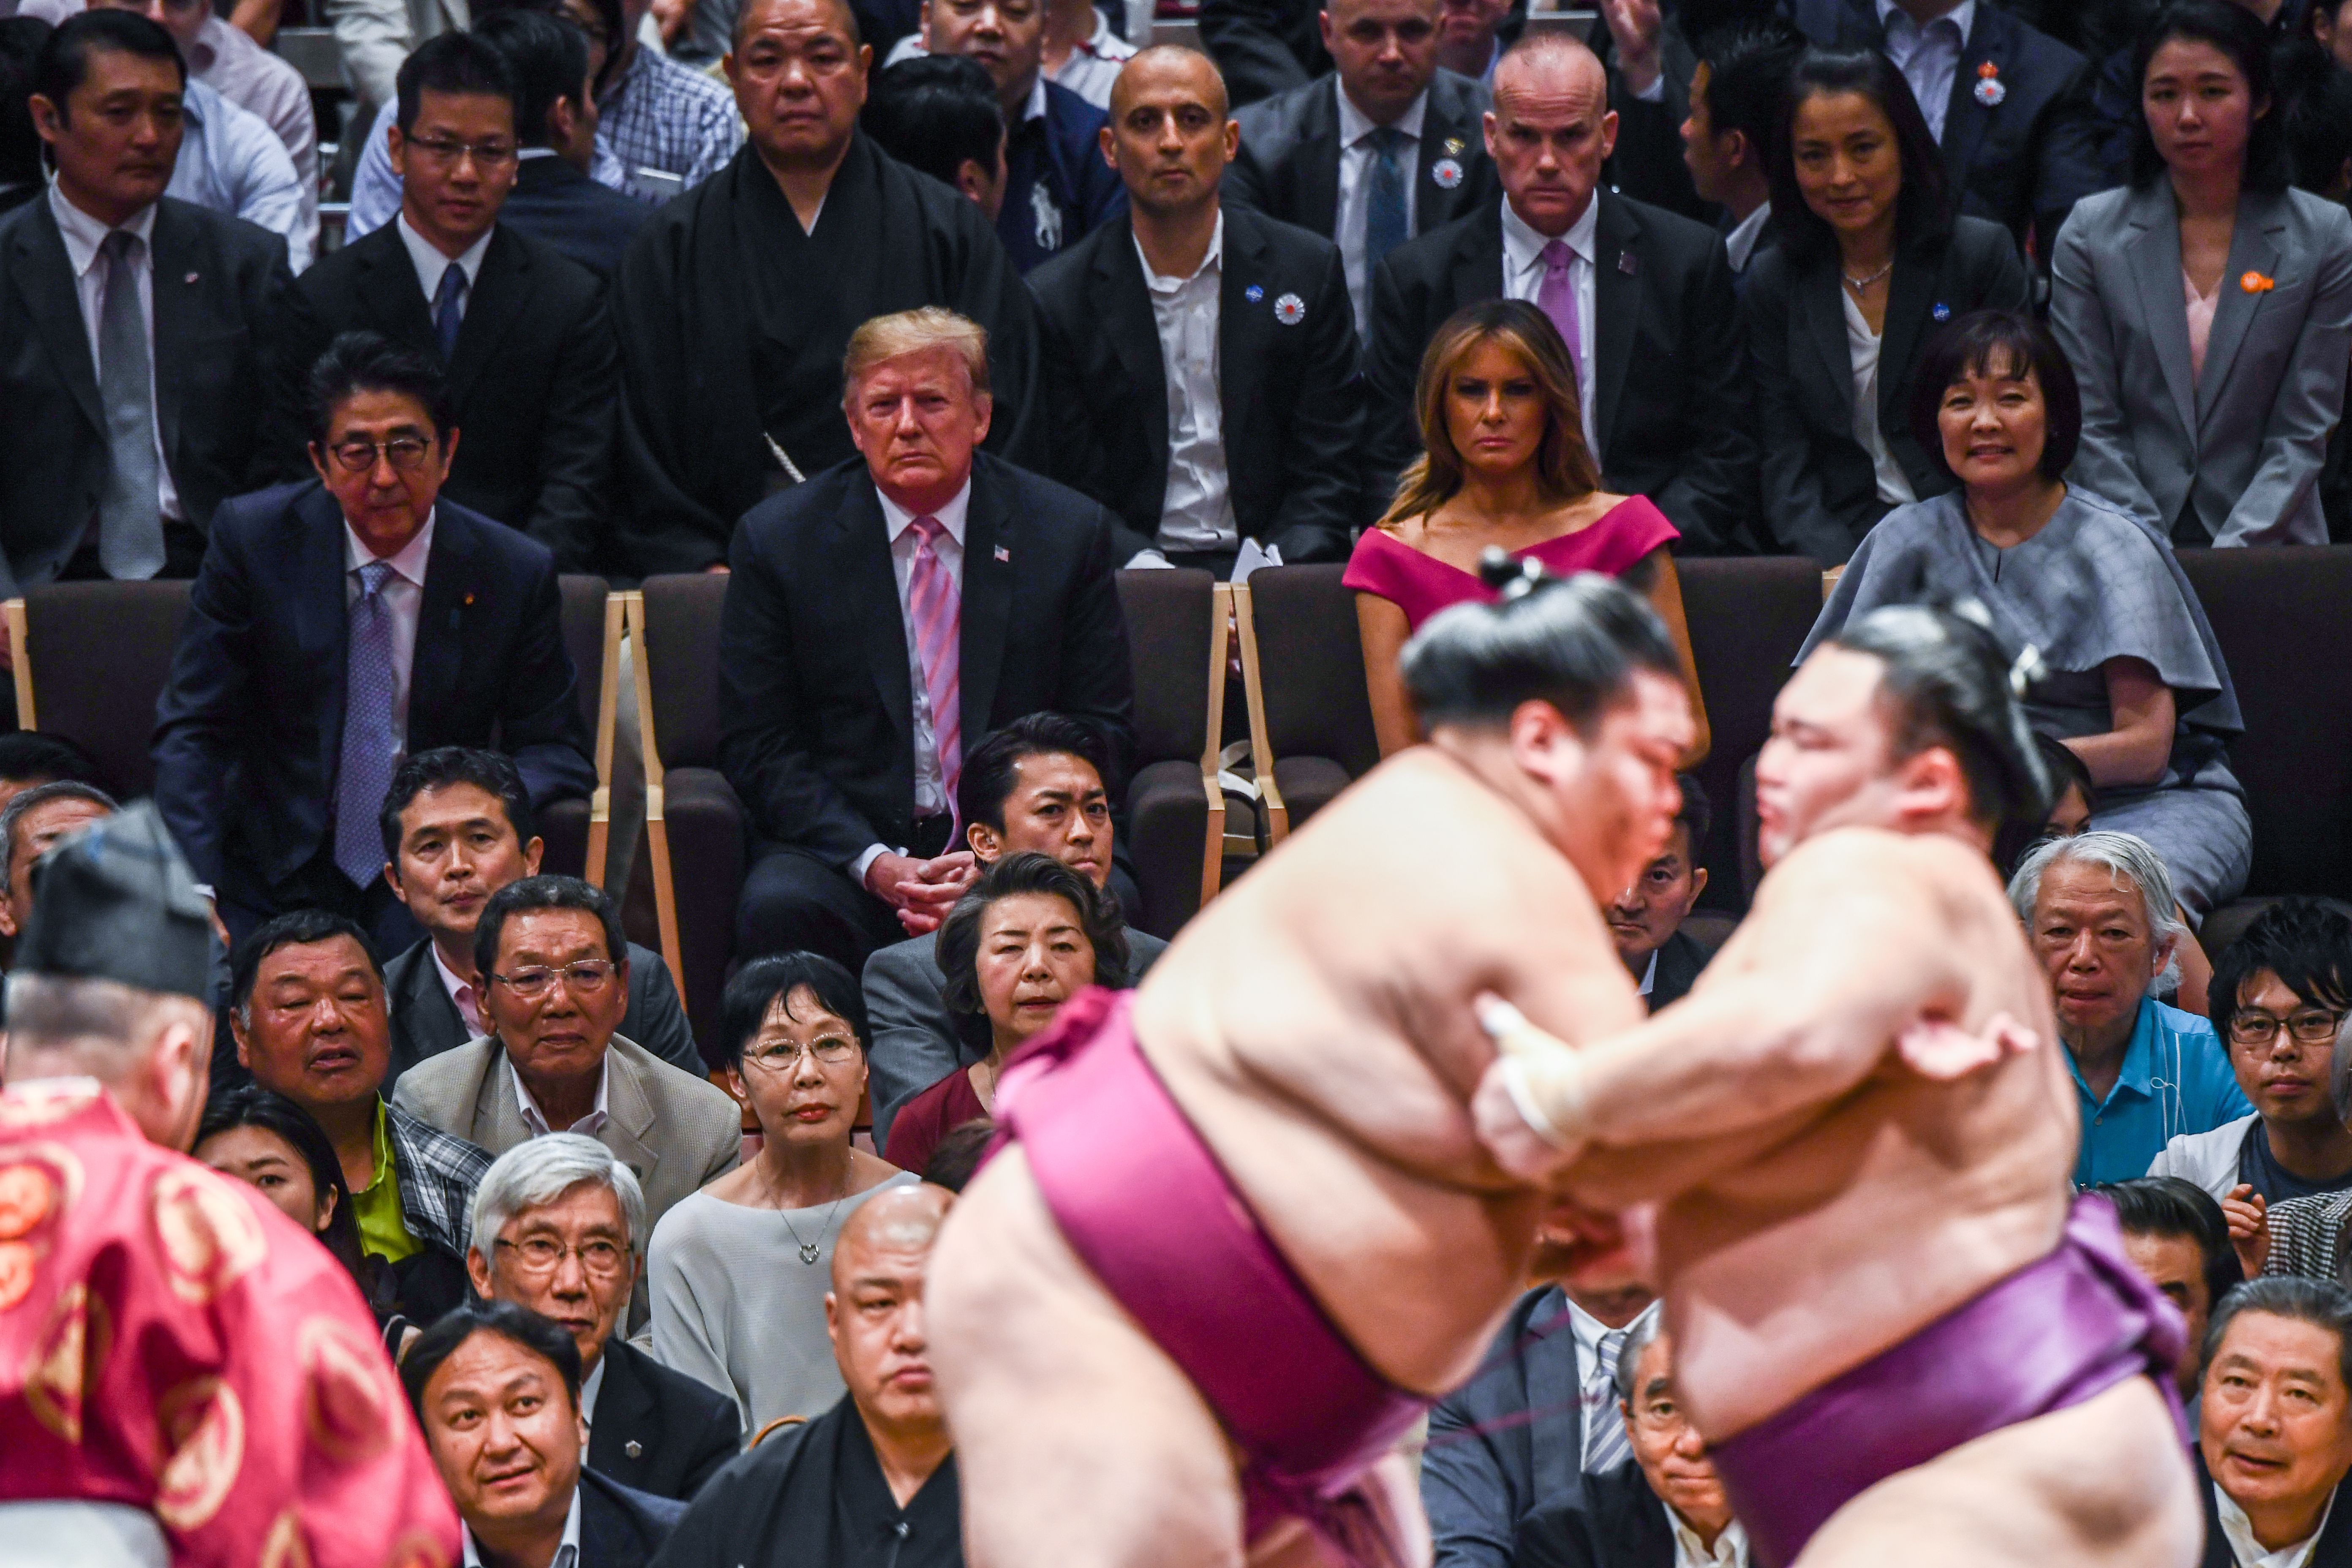 US President Donald Trump and First Lady Melania Trump are accompanied by Japan's Prime Minister Shinzo Abe and his wife Akie Abe (centre row) as they watch a sumo battle during the Summer Grand Sumo Tournament in Tokyo on May 26, 2019. (Photo by BRENDAN SMIALOWSKI/AFP/Getty Images)